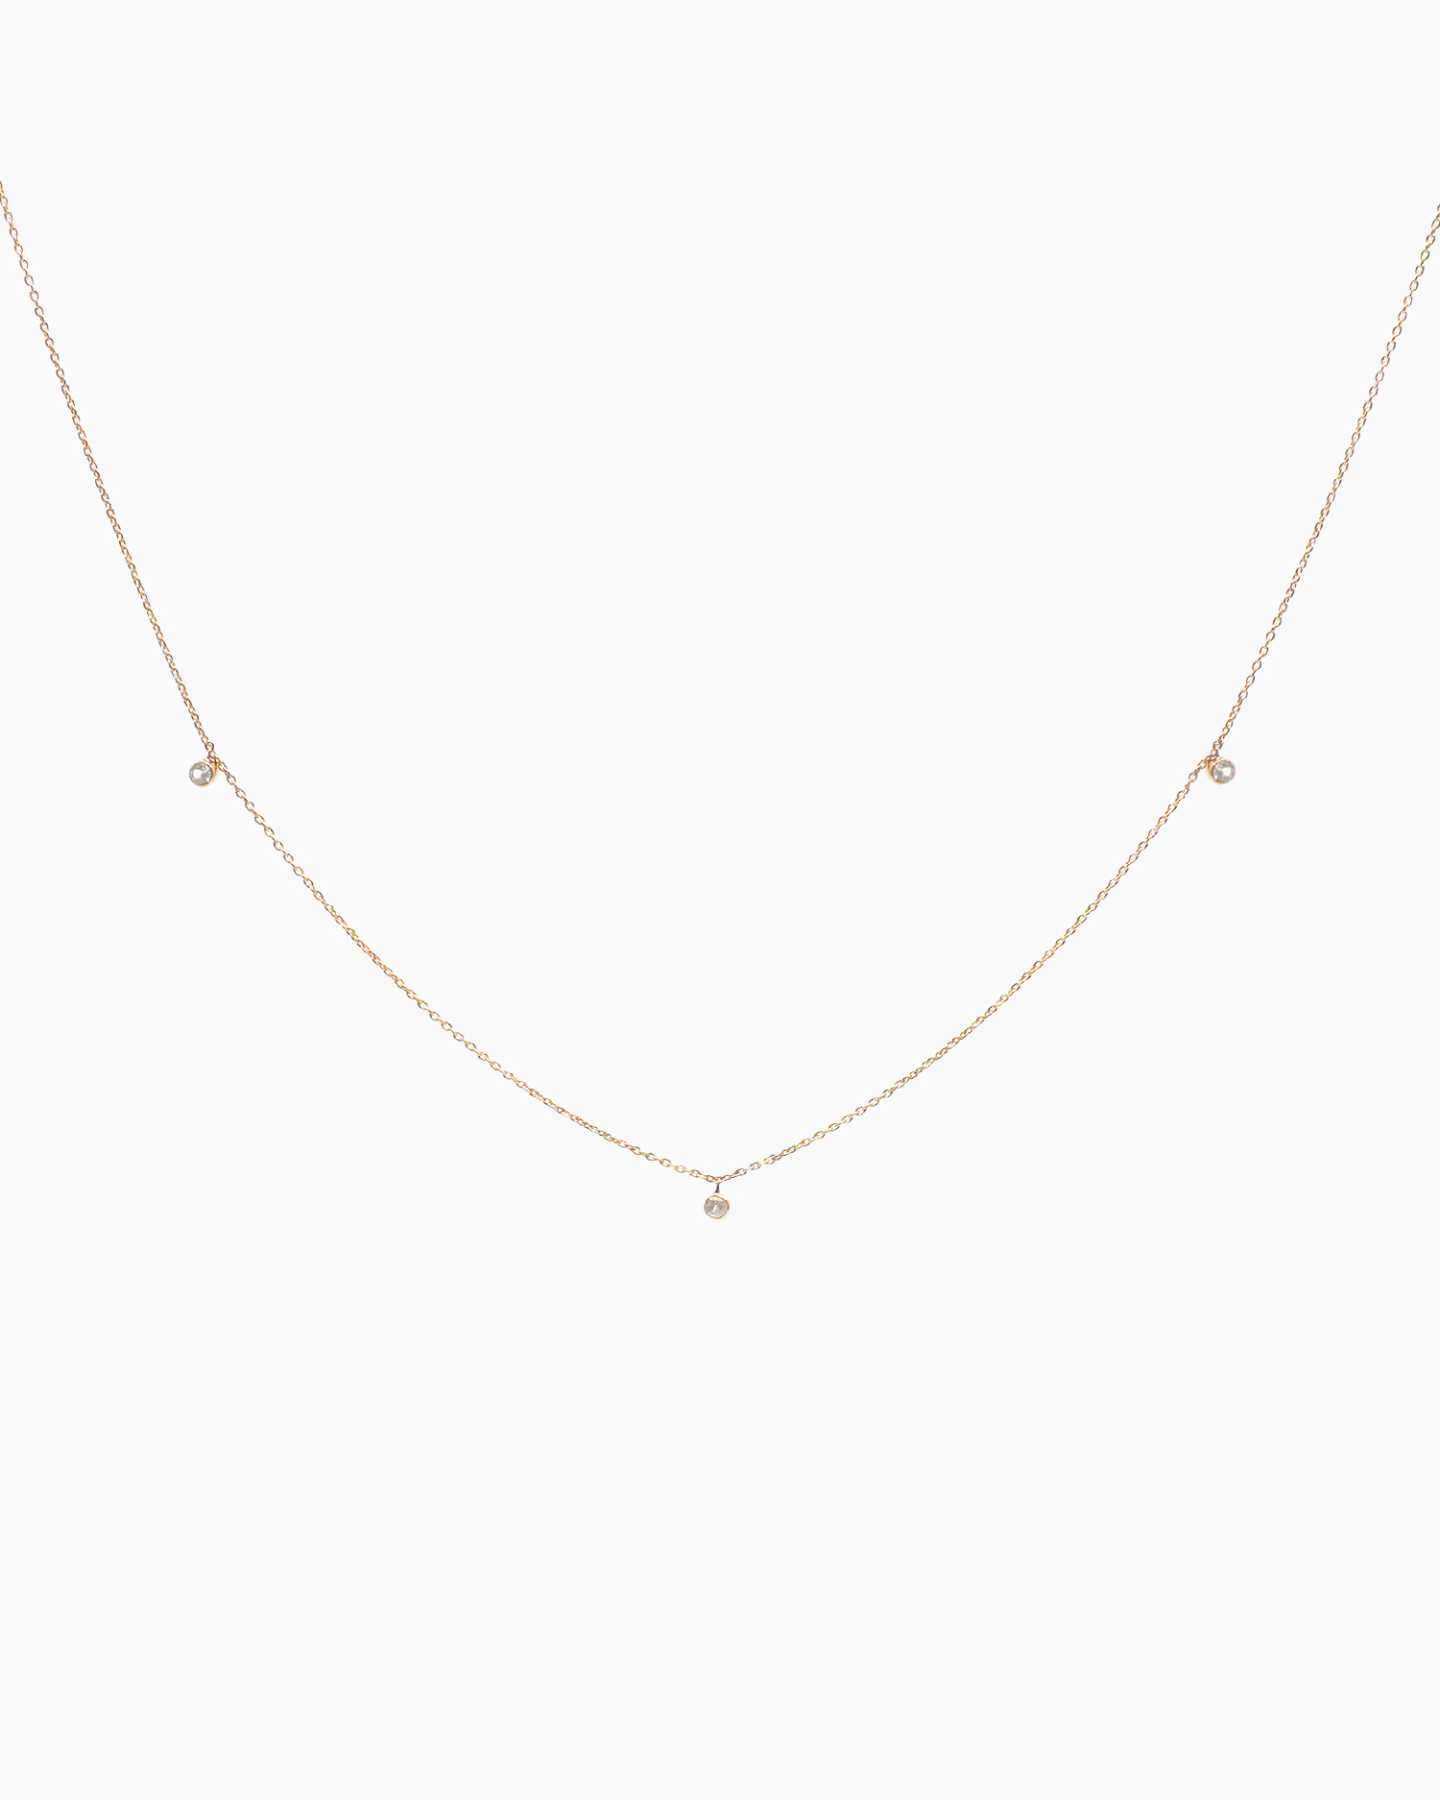 White Sapphire Choker Necklace - Gold Vermeil